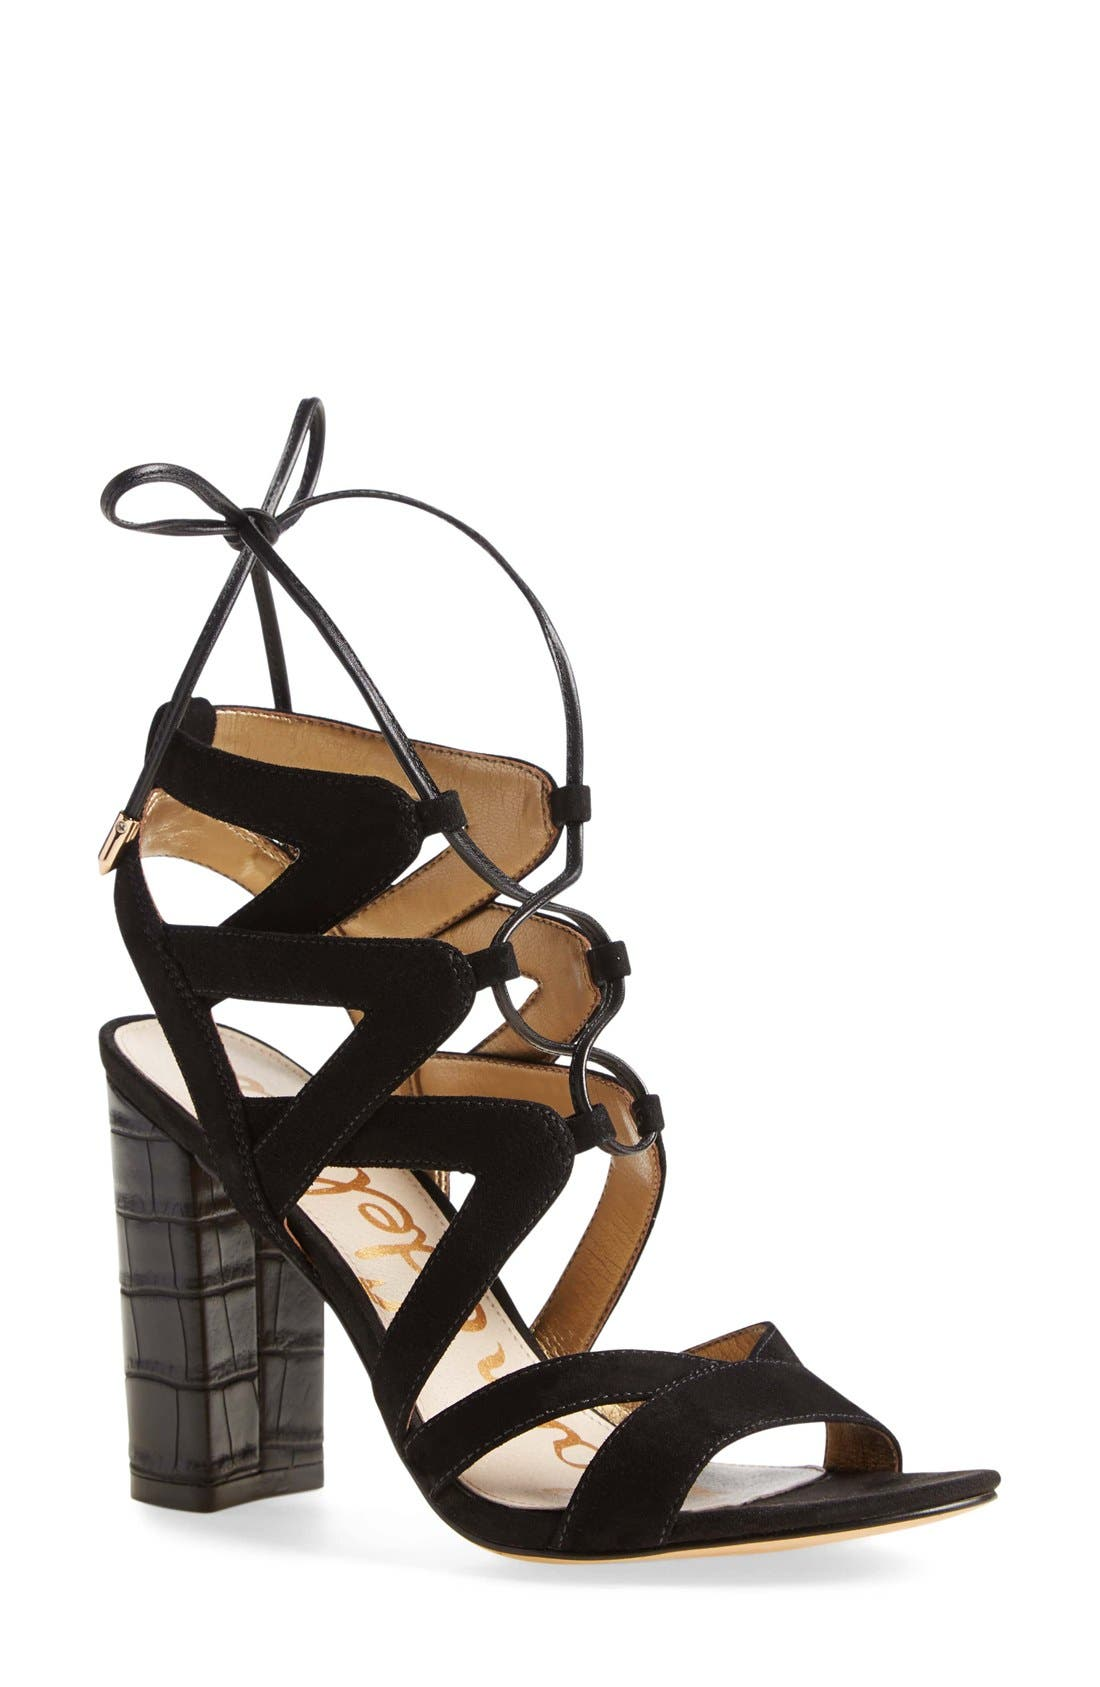 'Yardley' Lace-Up Sandal, Main, color, 001